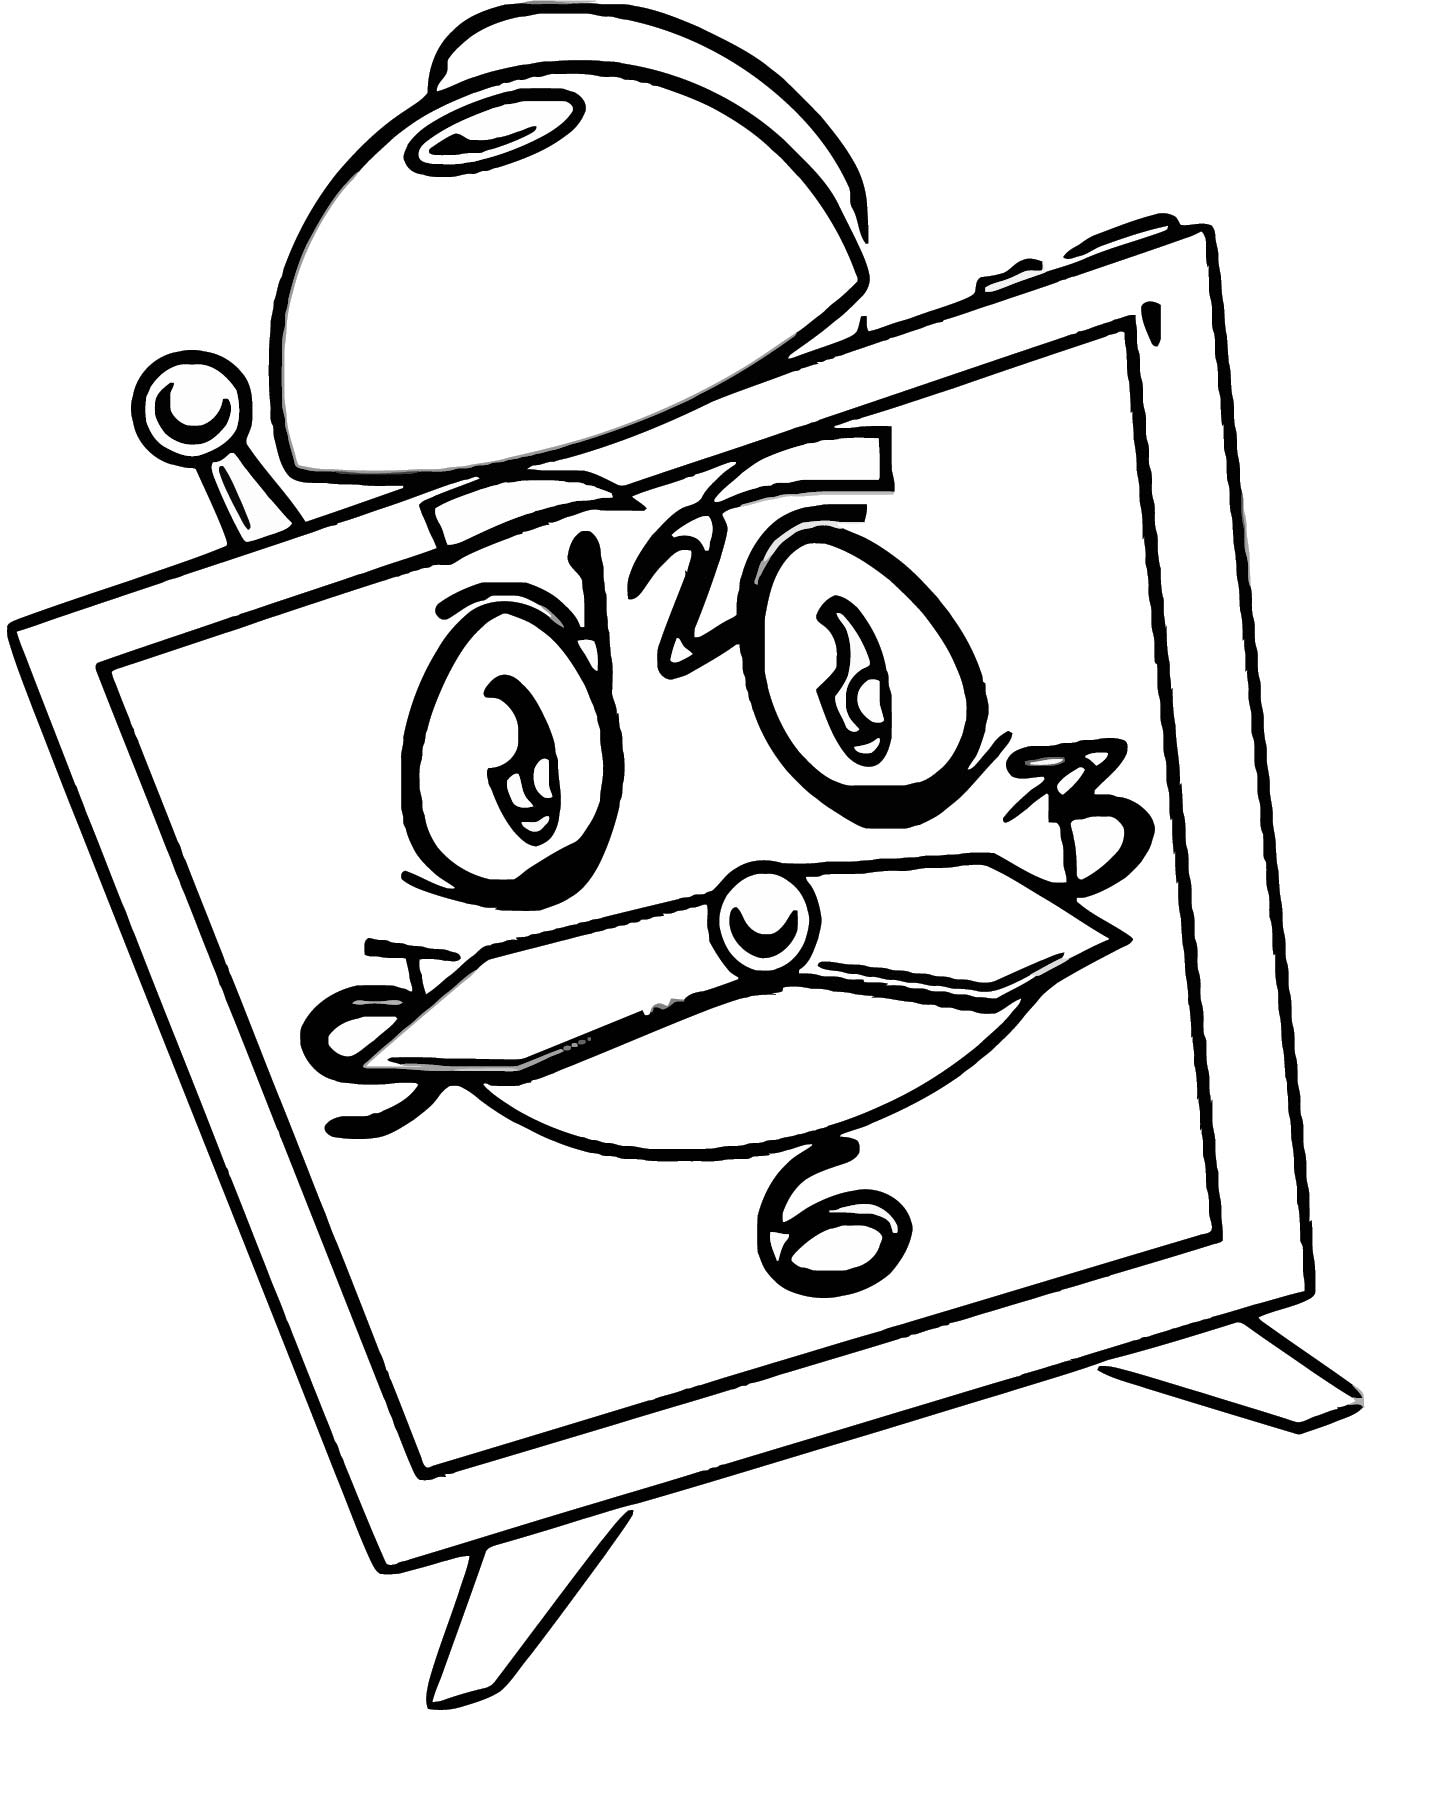 Cloc Free Printable K9 Cartoonized Free Printable Coloring Page ...